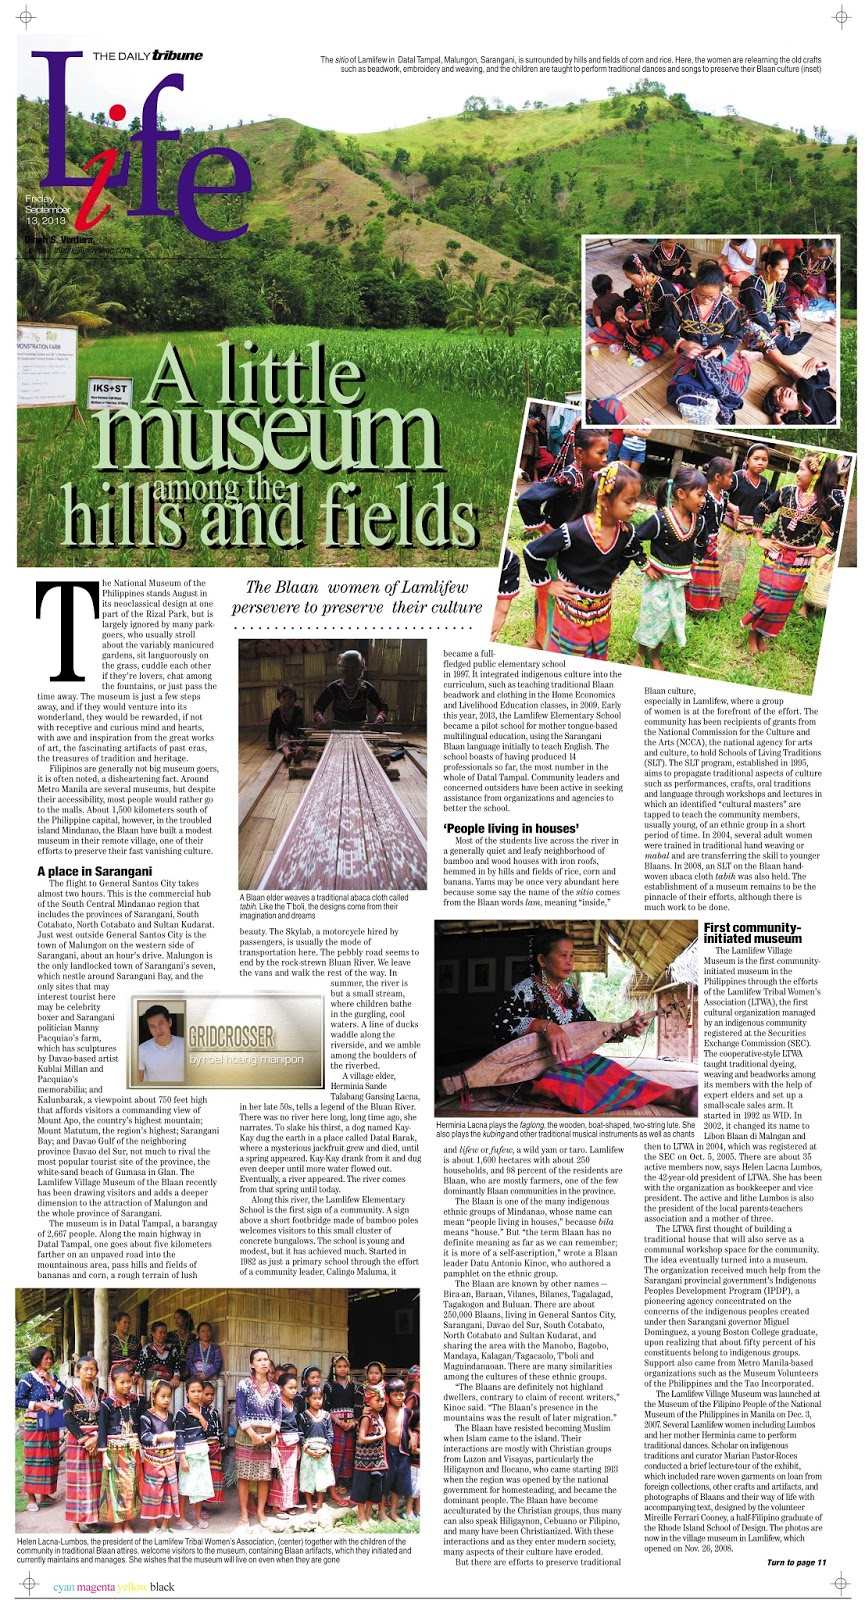 Gridcrosser: A Little Museum by a River, Among the Hills and